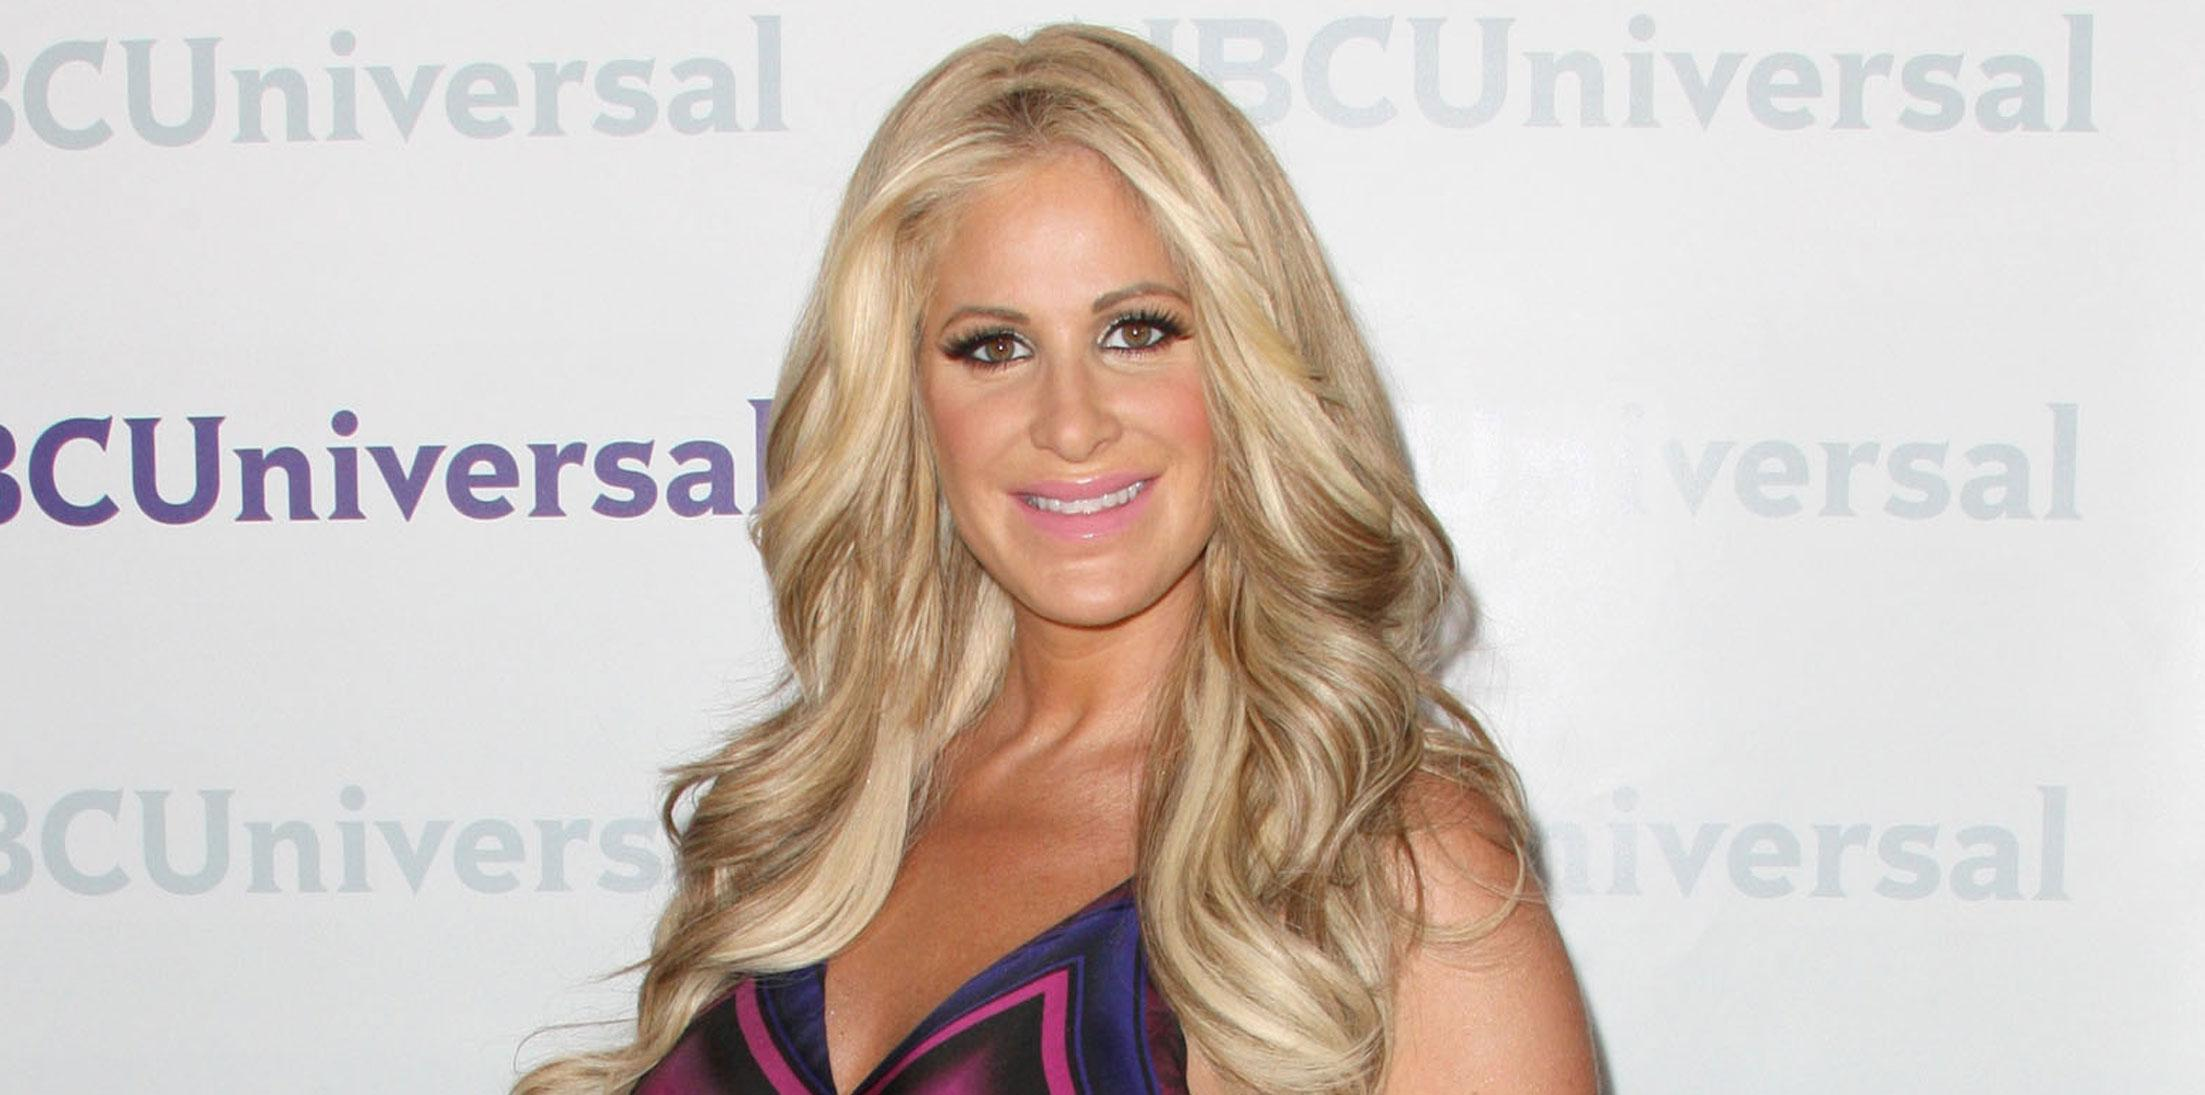 Kim Zolciak Biermann Son Dog Attack Update Long